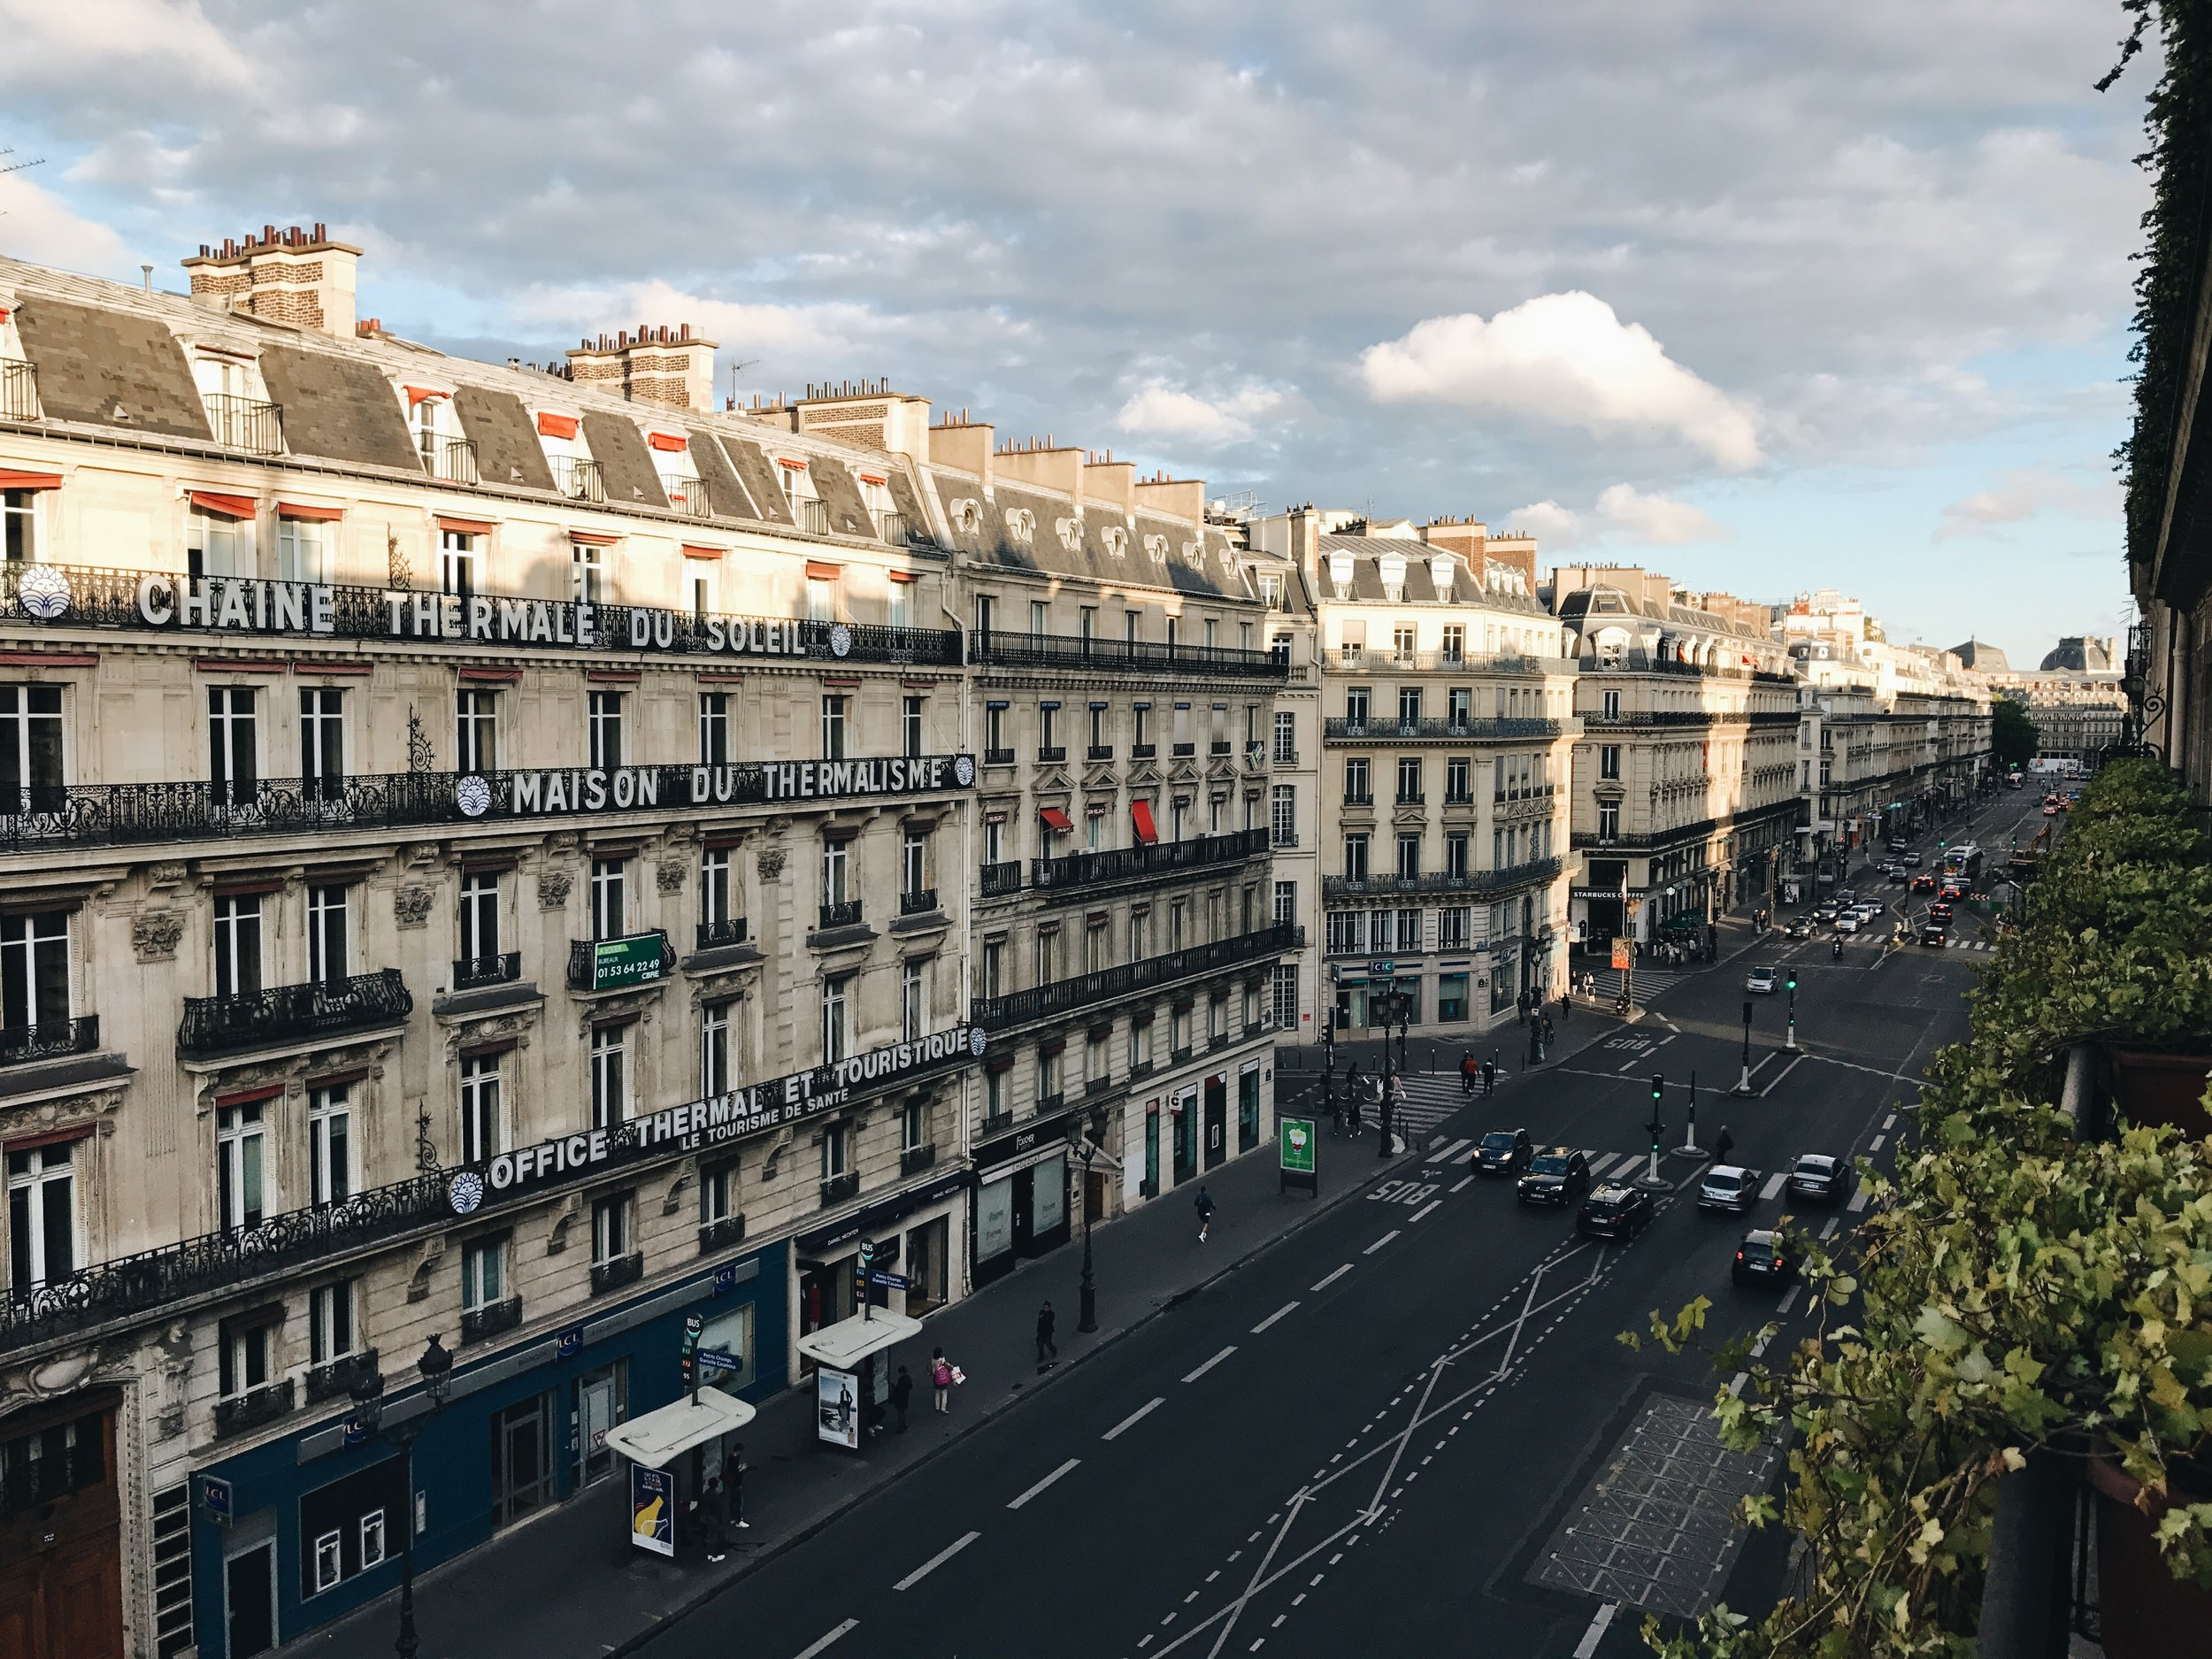 View from balcony at Hotel Edouard 7, Paris